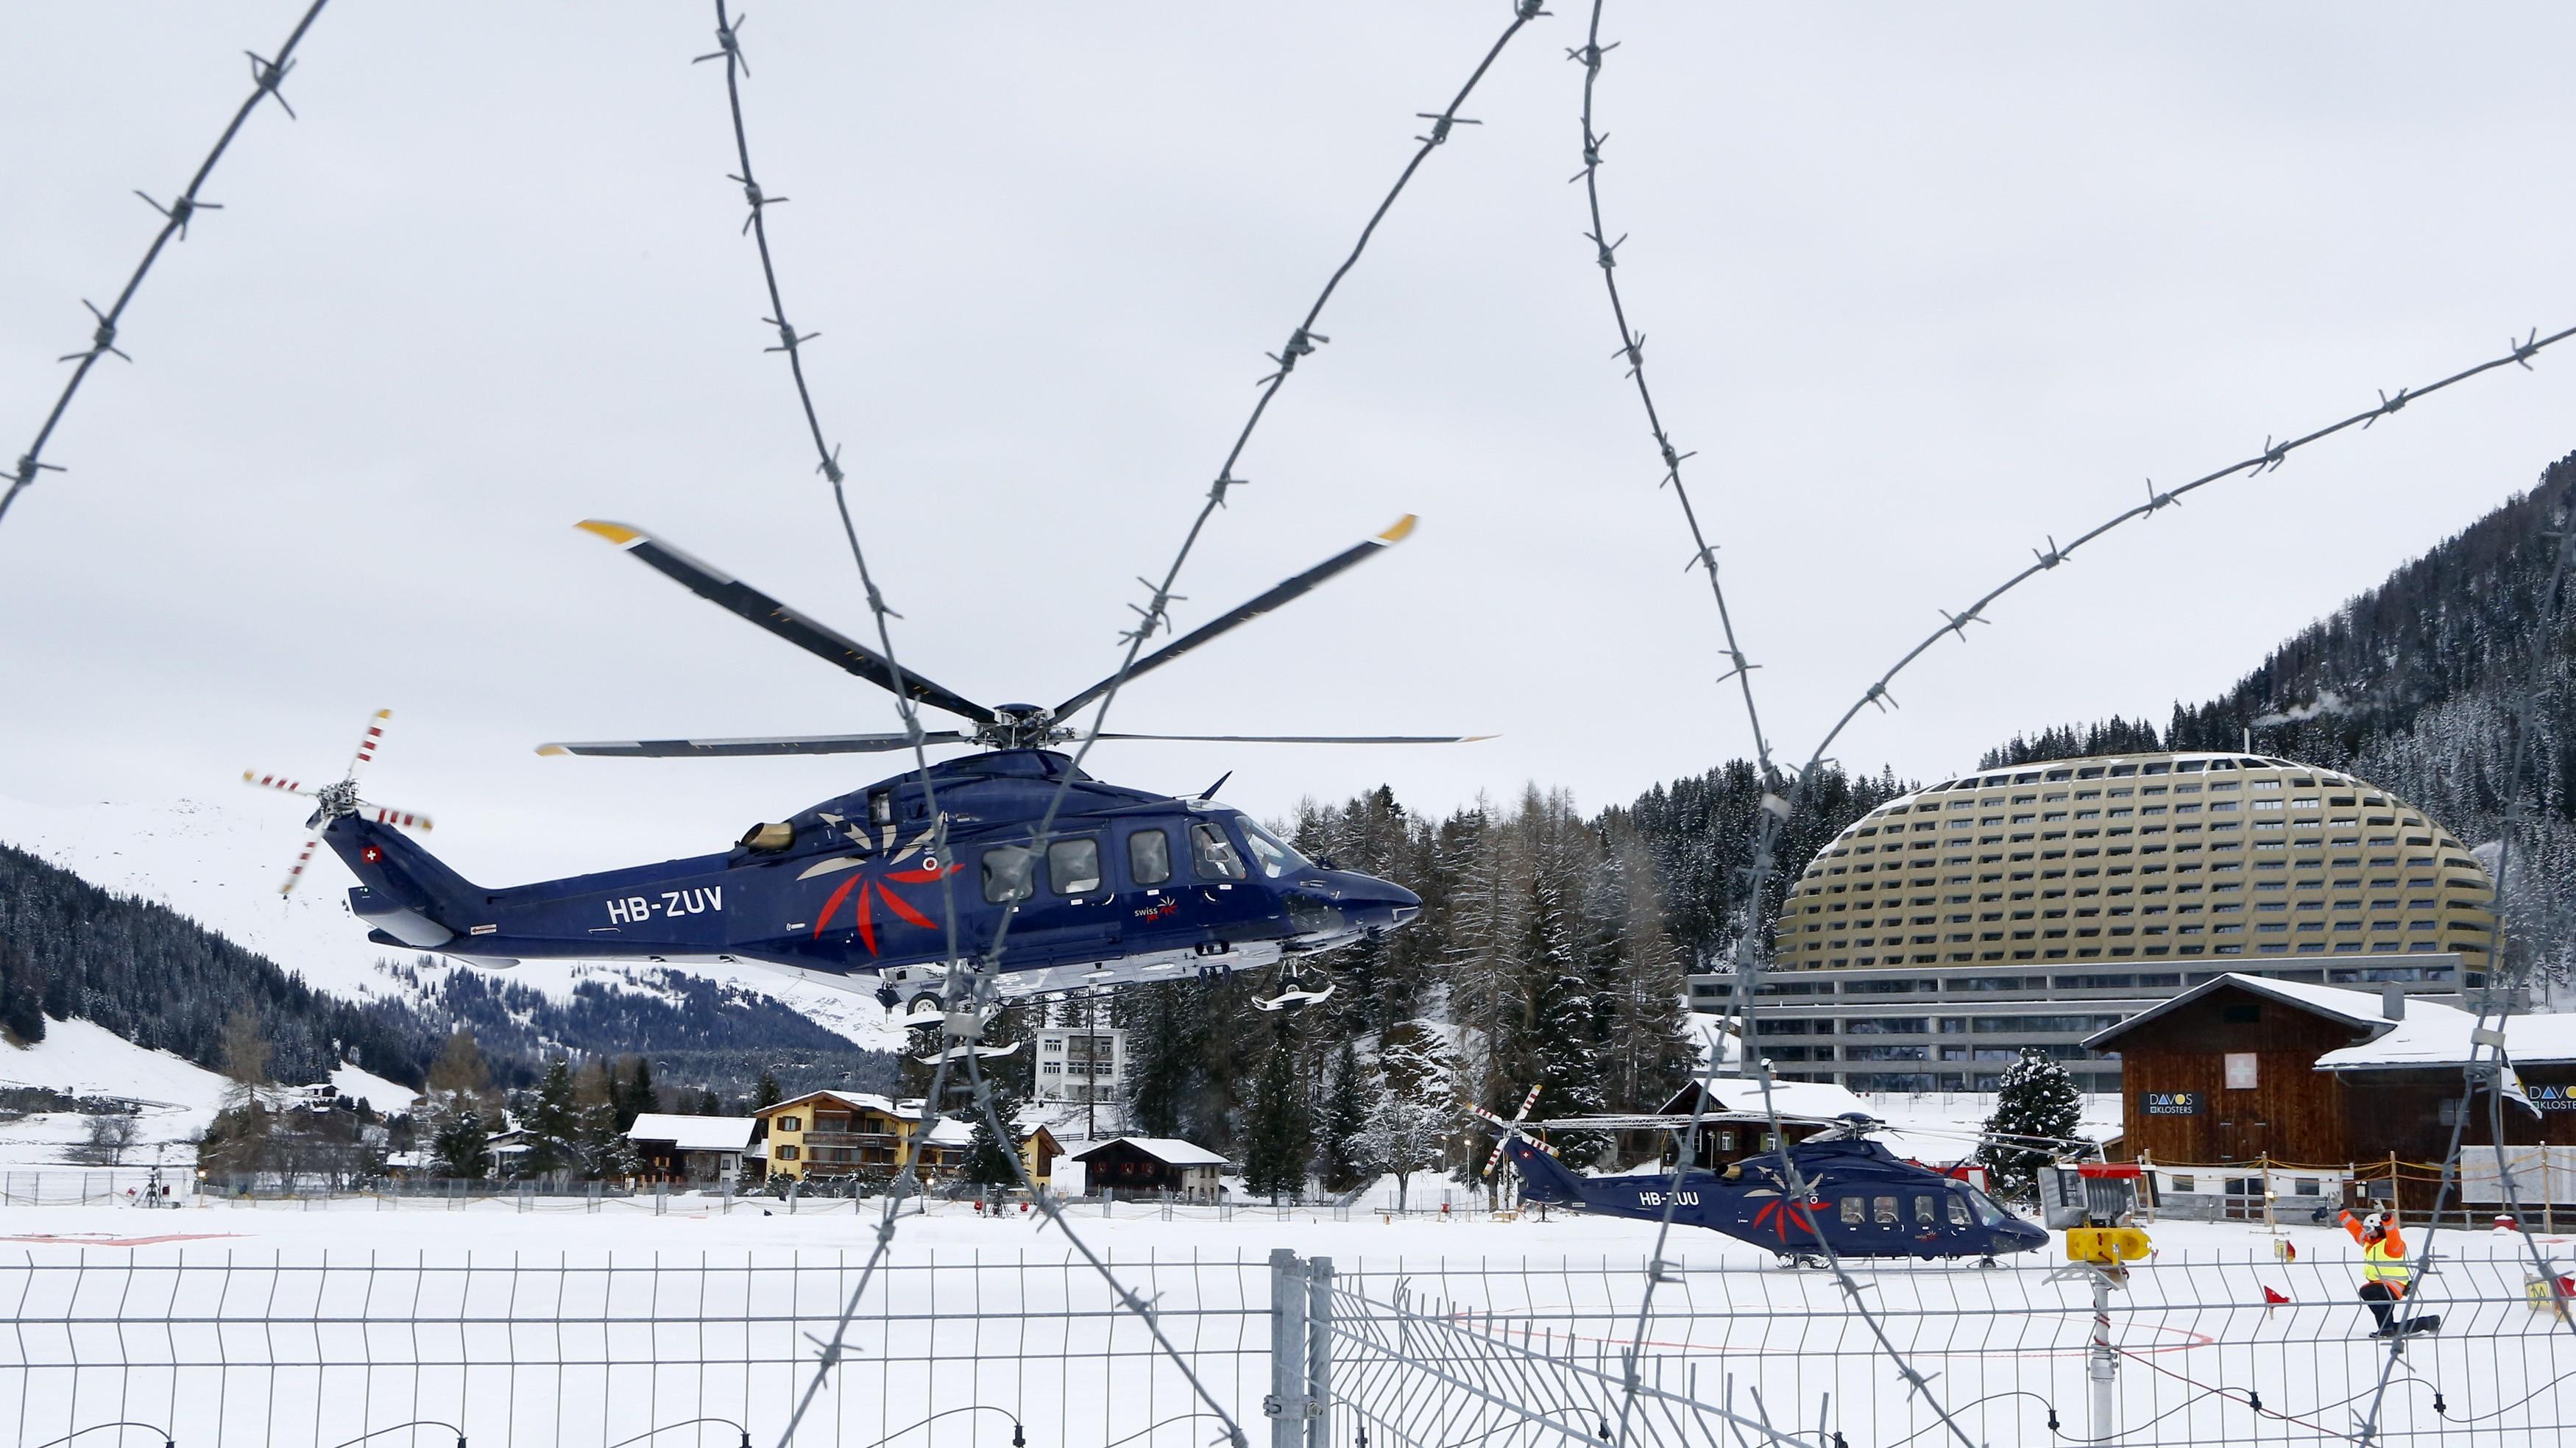 A participant arrives by private helicopter for the World Economic Forum (WEF)  in the Swiss mountain resort of Davos January 20, 2015. More than 1,500 business leaders and 40 heads of state or government will attend the January 21-24 meeting of the World Economic Forum (WEF) to network and discuss big themes, from the price of oil to the future of the Internet. This year they are meeting in the midst of upheaval, with security forces on heightened alert after attacks in Paris, the European Central Bank considering a radical government bond-buying programme and the safe-haven Swiss franc rocketing.